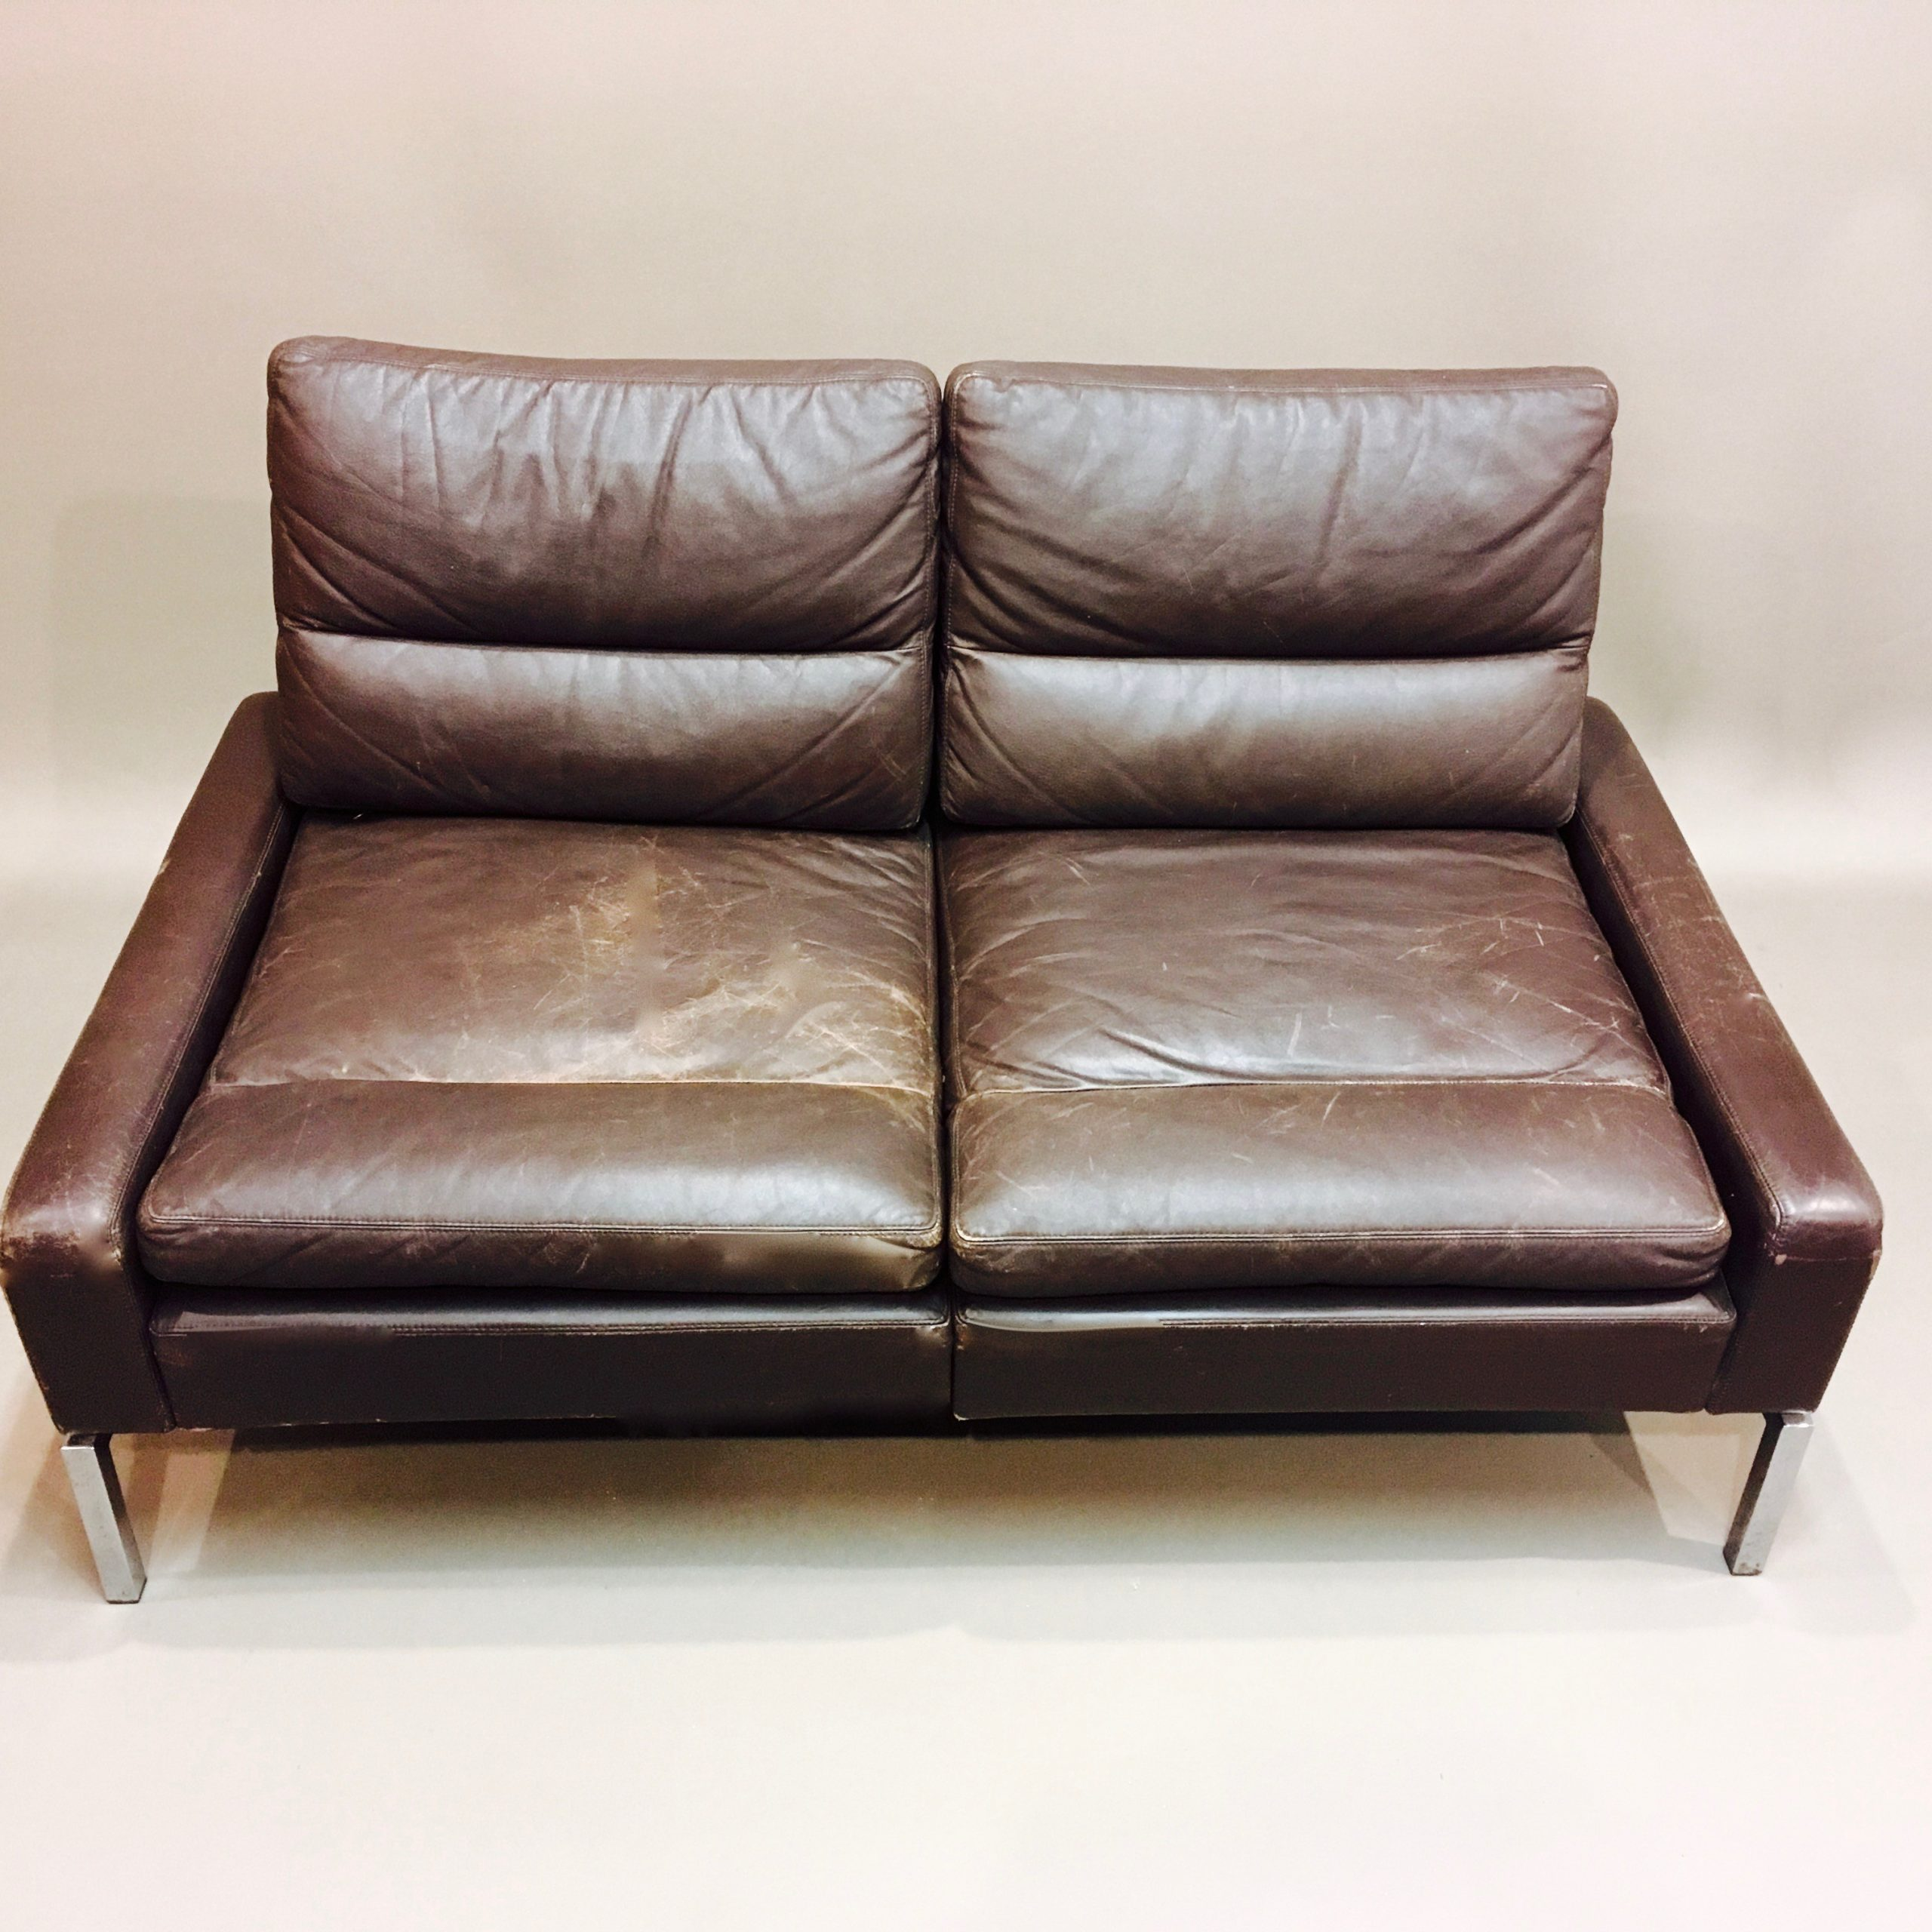 Vintage Two Seater Sofa In Leather And Chrome – 1960S Regarding Two Seater Sofas (View 9 of 15)